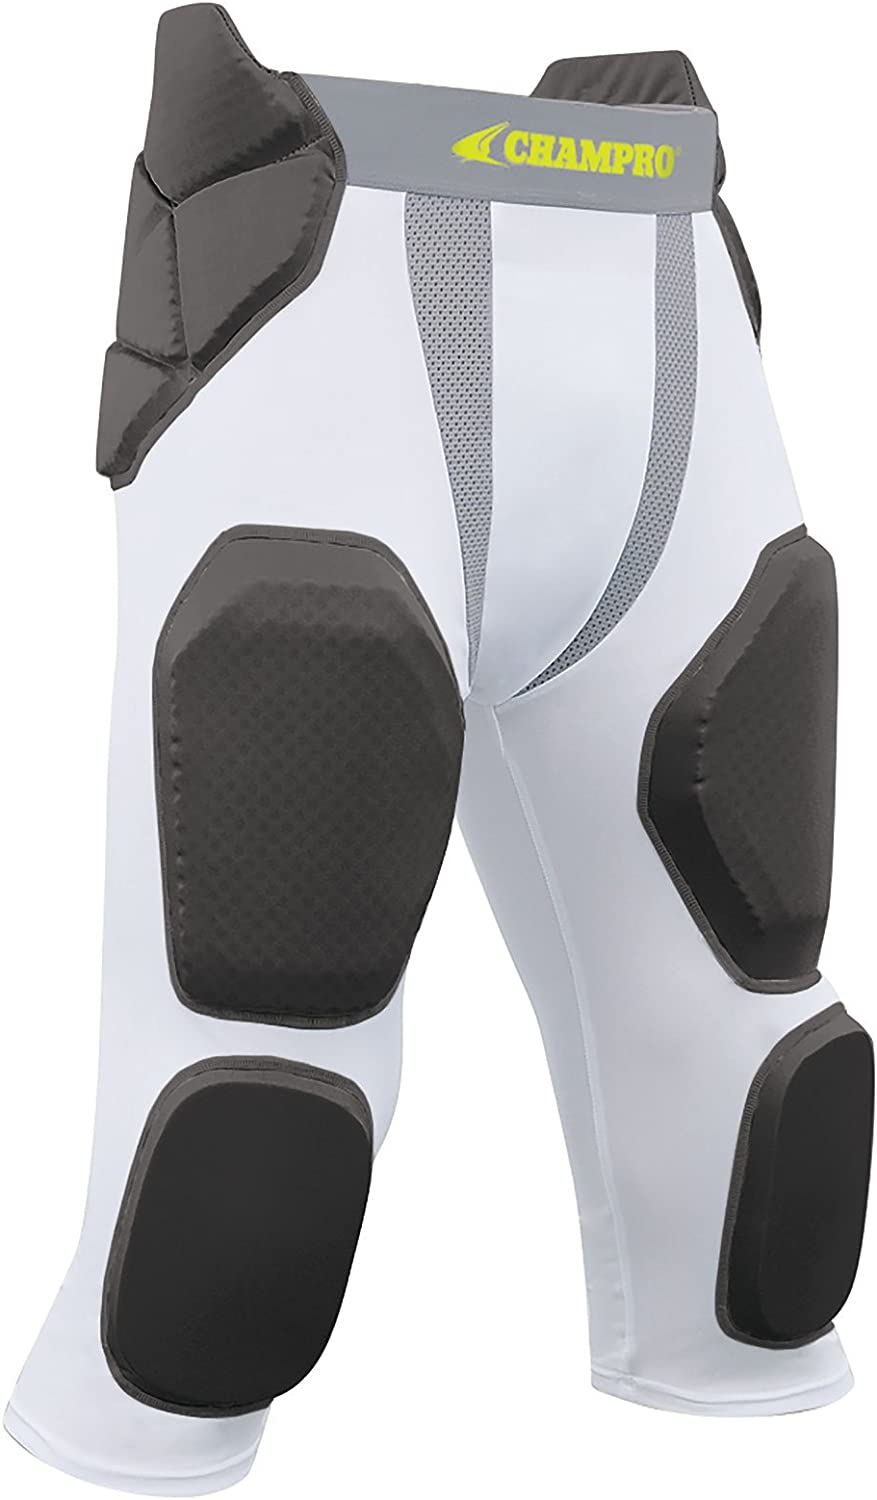 Blackout Tees FPGU7 Champro Man Up pant football Fees free!! Ranking integrated 1st place Girdle CH Pad 7